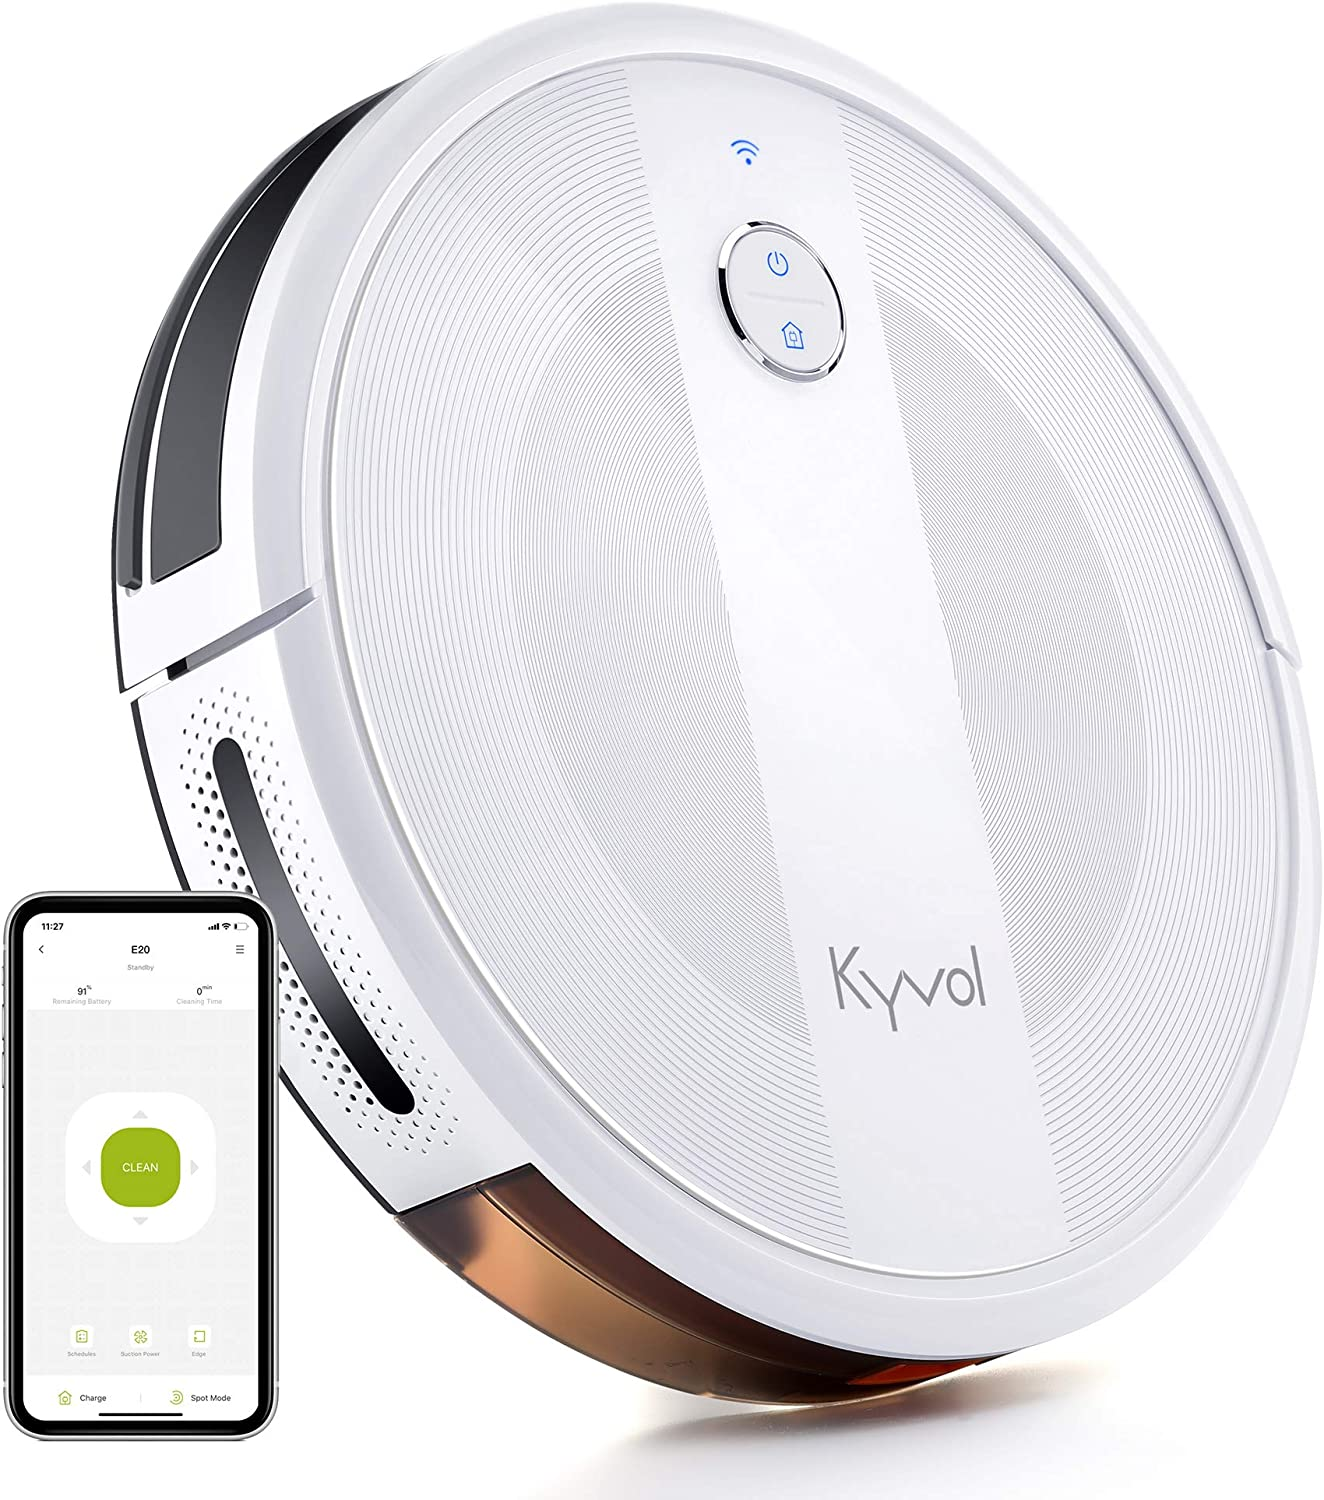 Kyvol Cybovac E20 Robot Vacuum Cleaner, 2000Pa Suction, 150 min Runtime, Boundary Strips Included, Quiet, Slim, Self-Charging, Works with Alexa, Ideal for Pet Hair, Carpets, Hard Floors